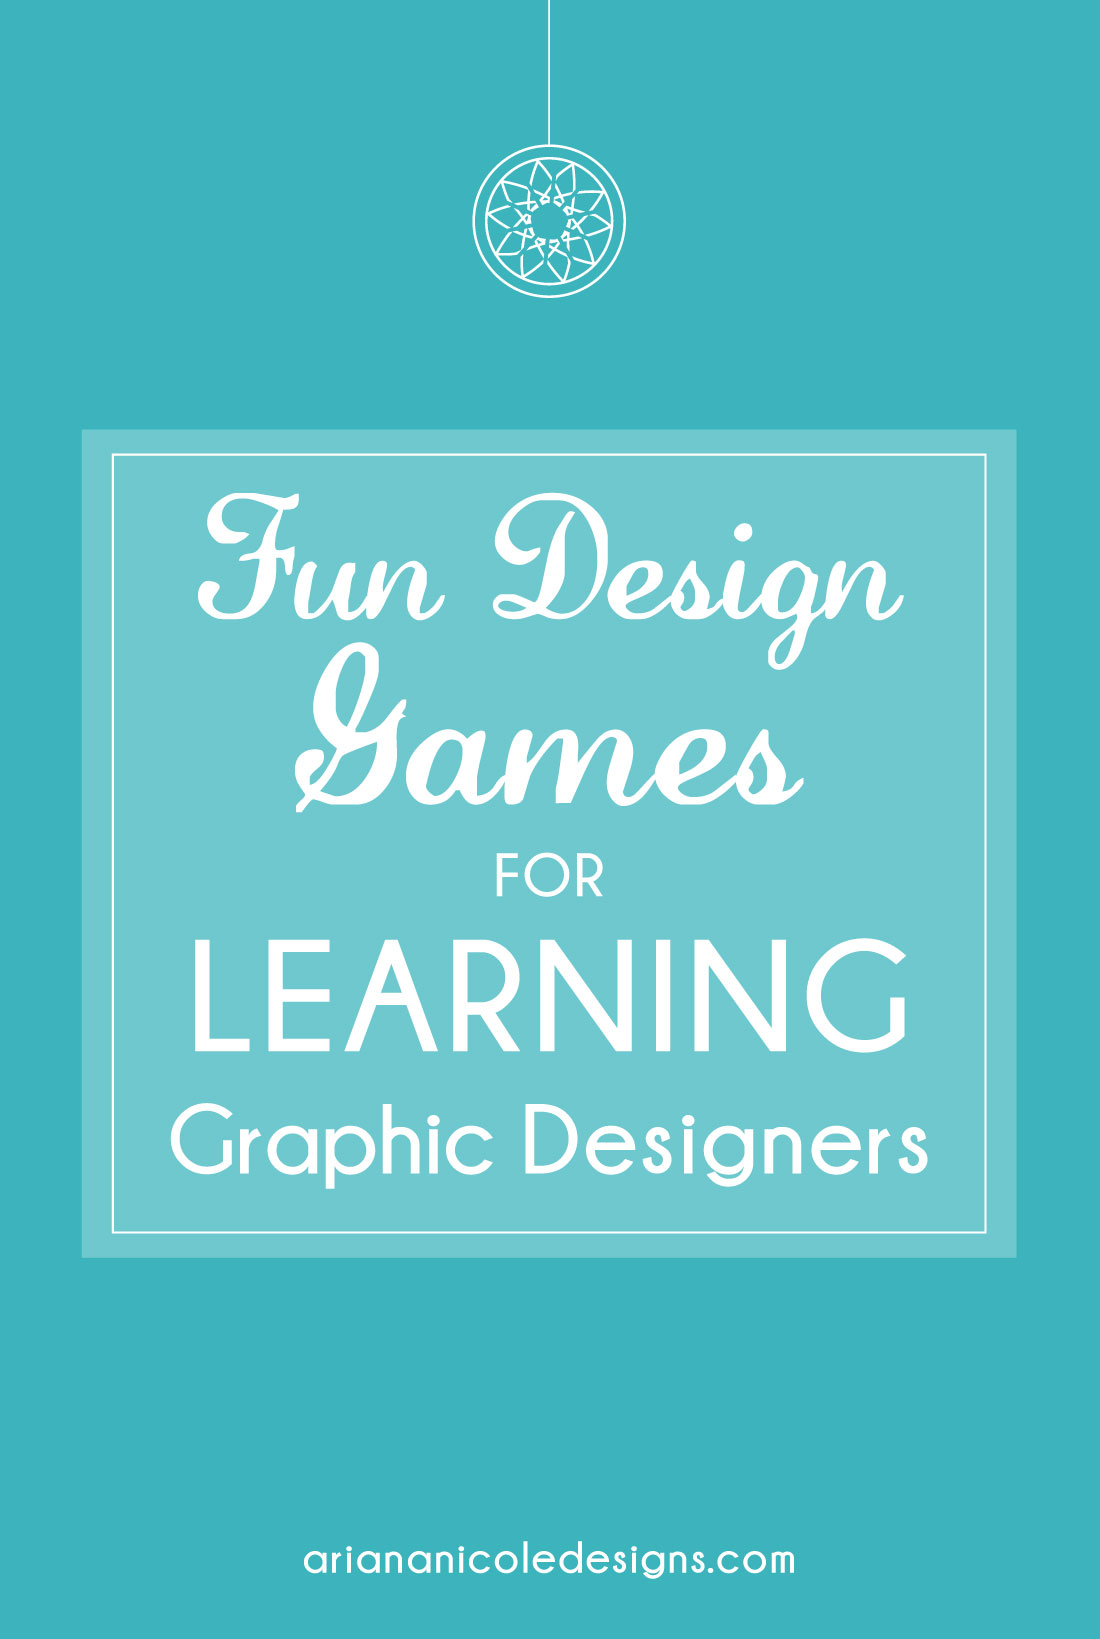 Fun Design Games for Learning Graphic Designers - Ariana Nicole Designs